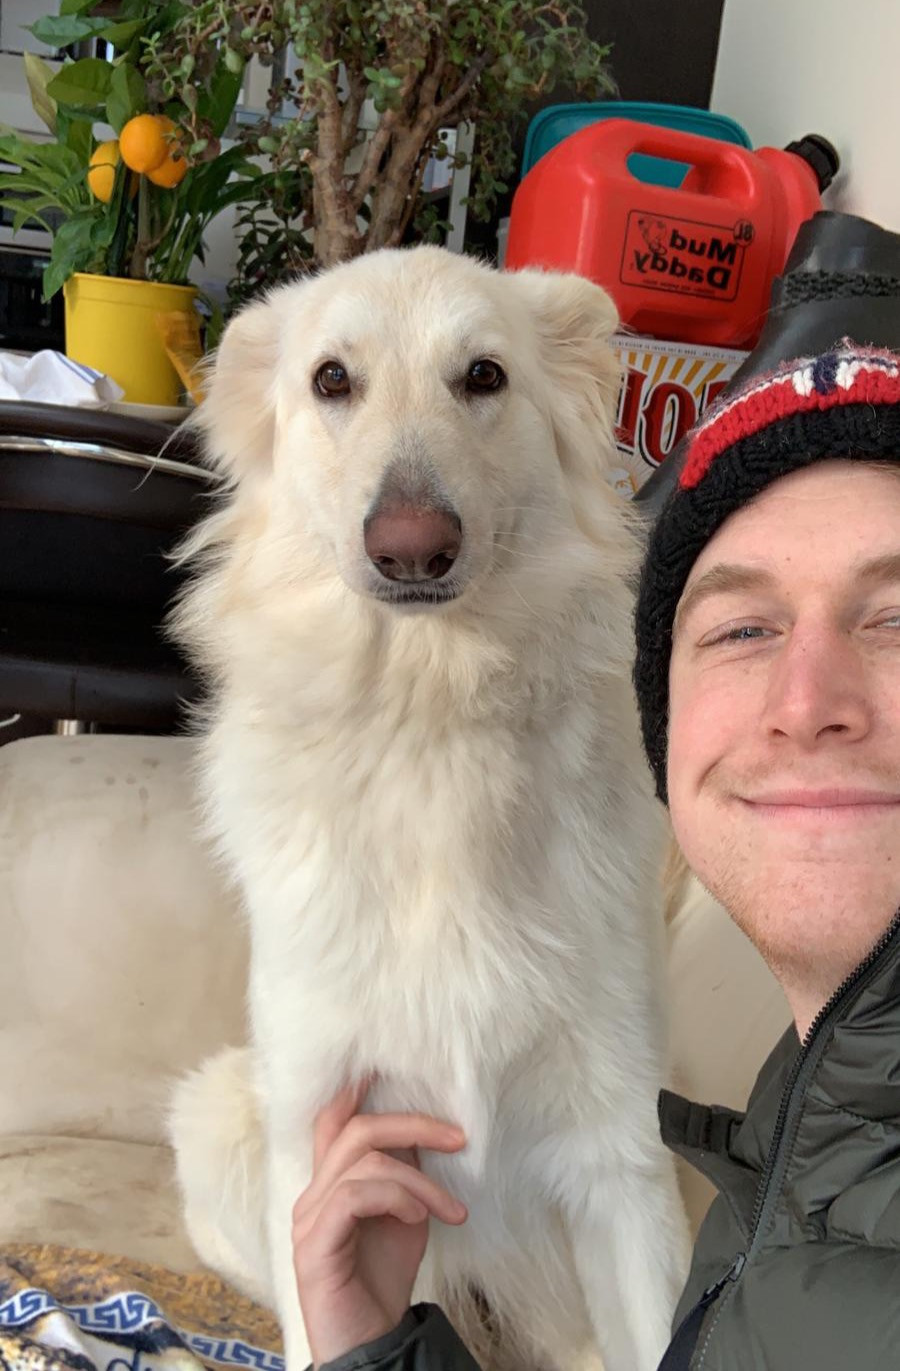 Maggie, the white german shepherd poses for a photo with her owner.